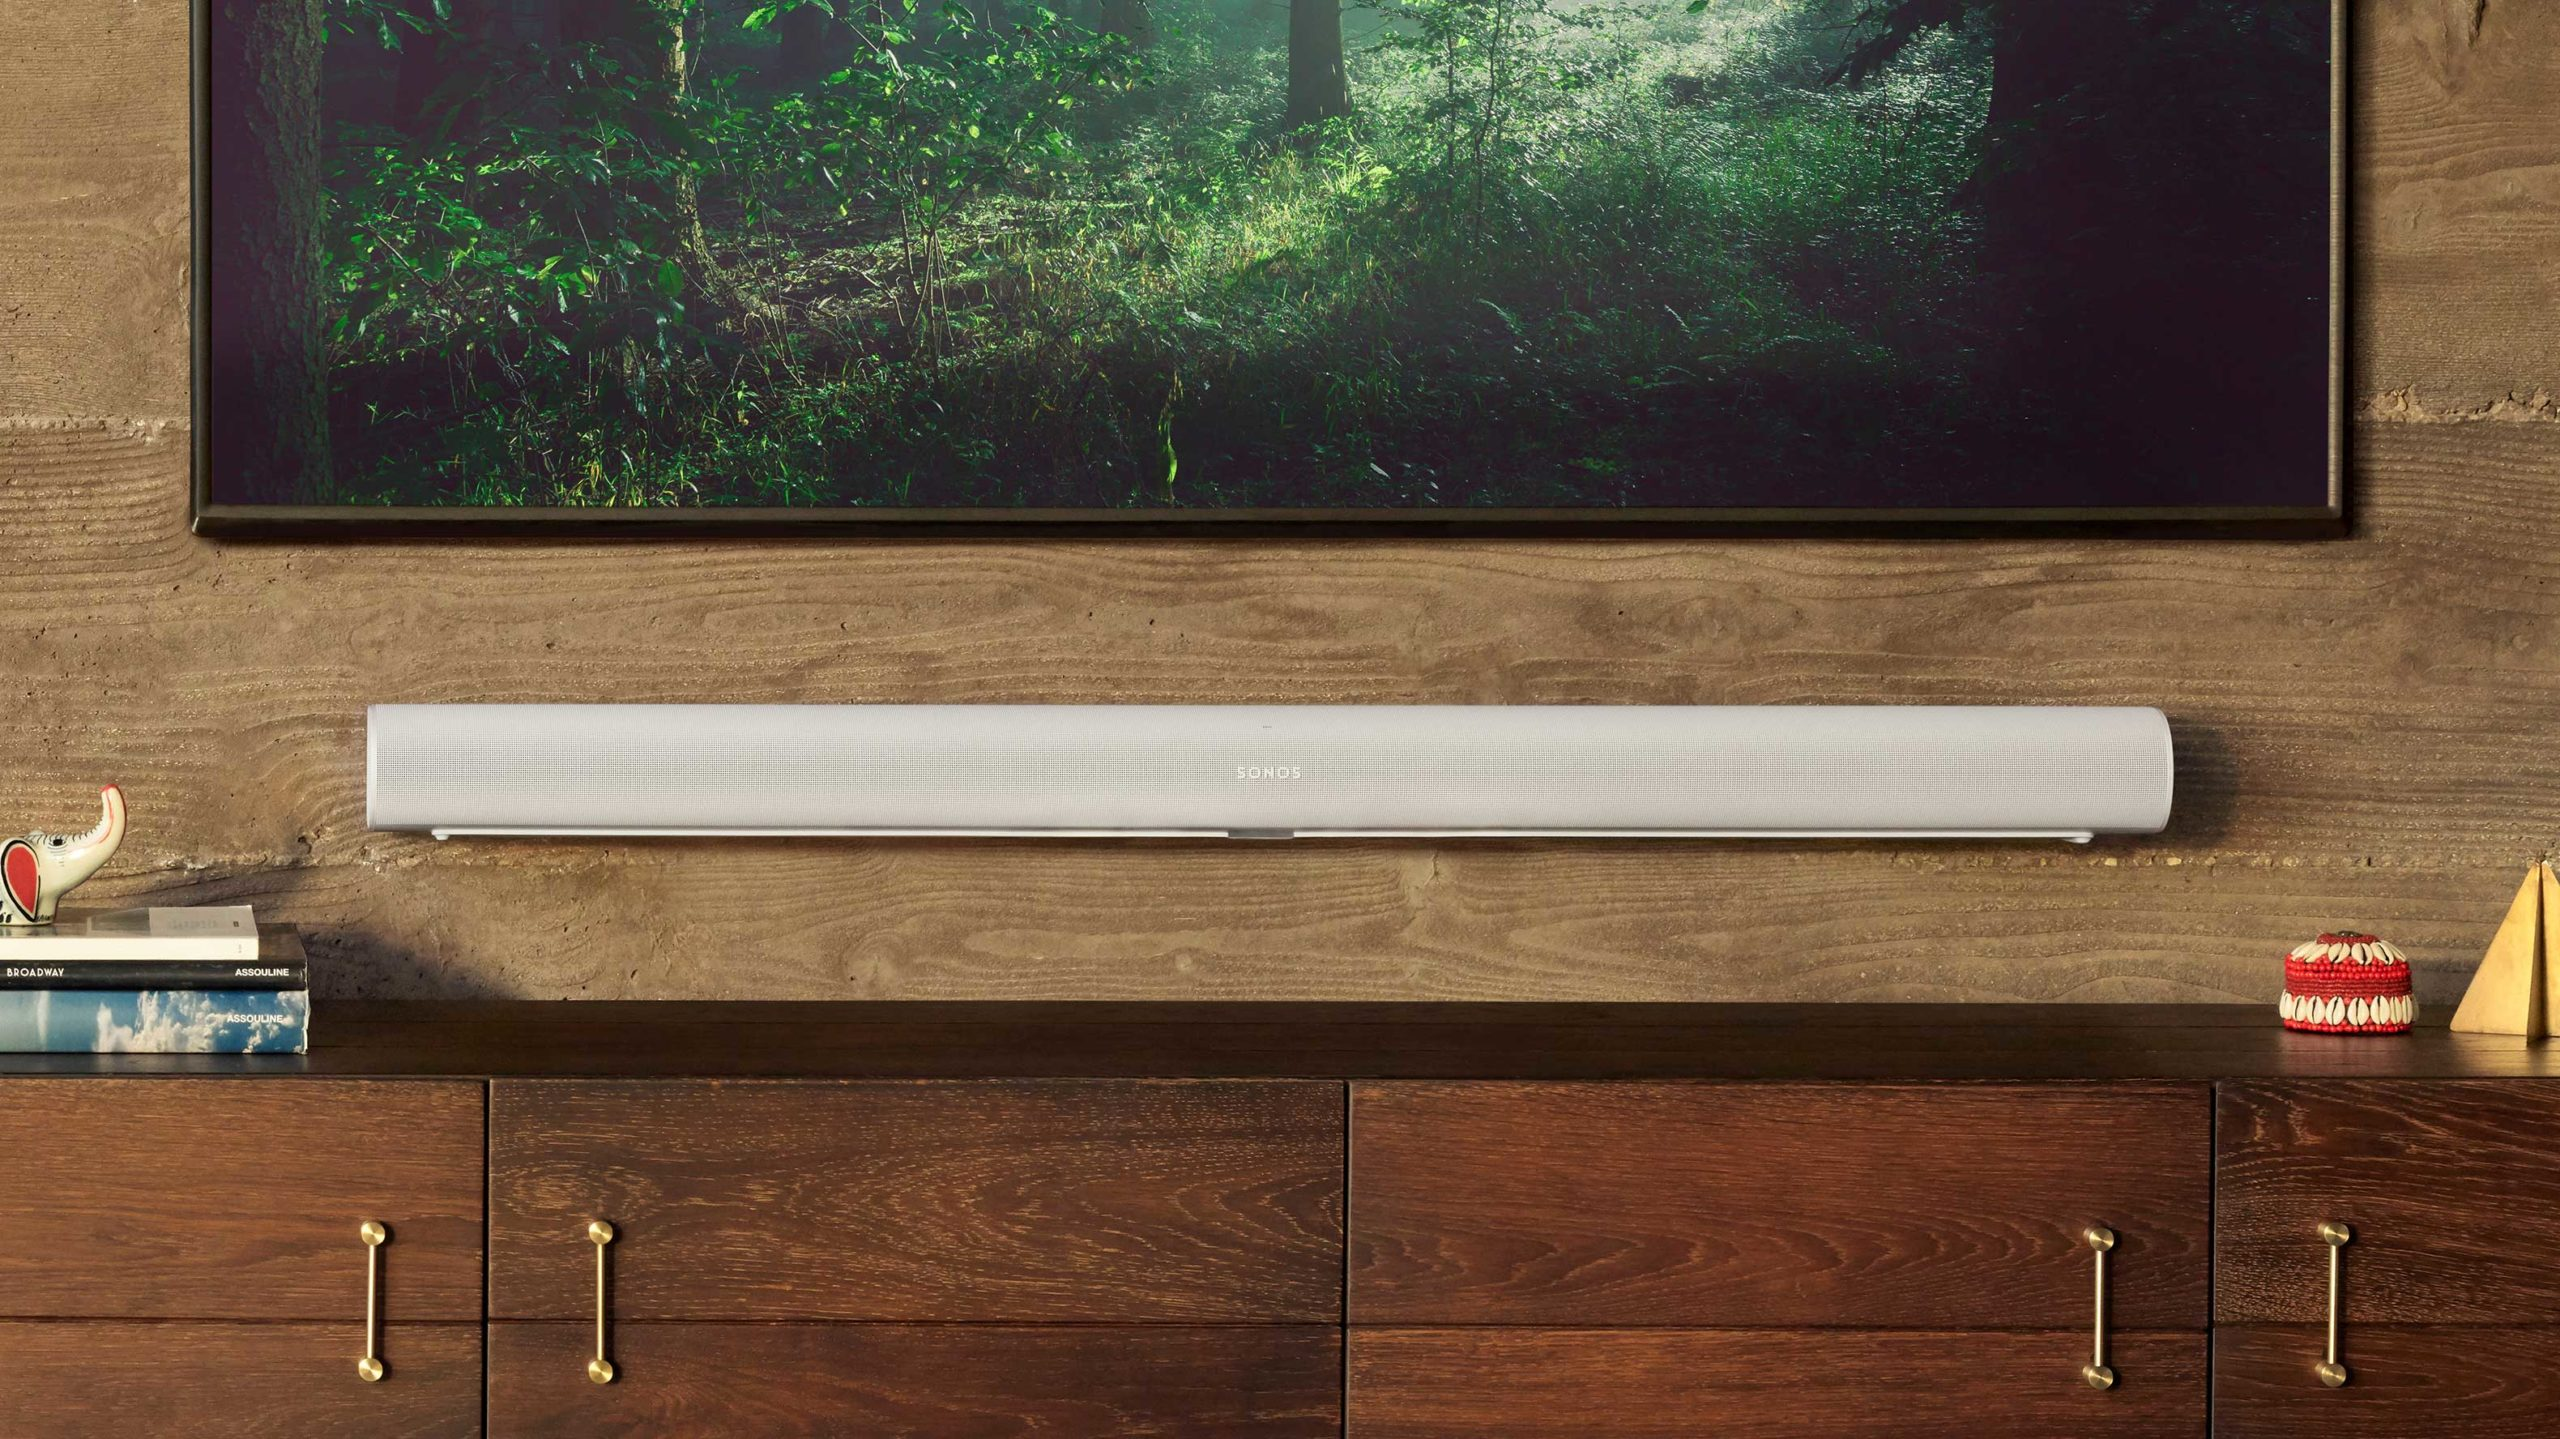 sonos-arc-surround sound speakers tv soundbar - supplied and installed by MDfx Within in West London